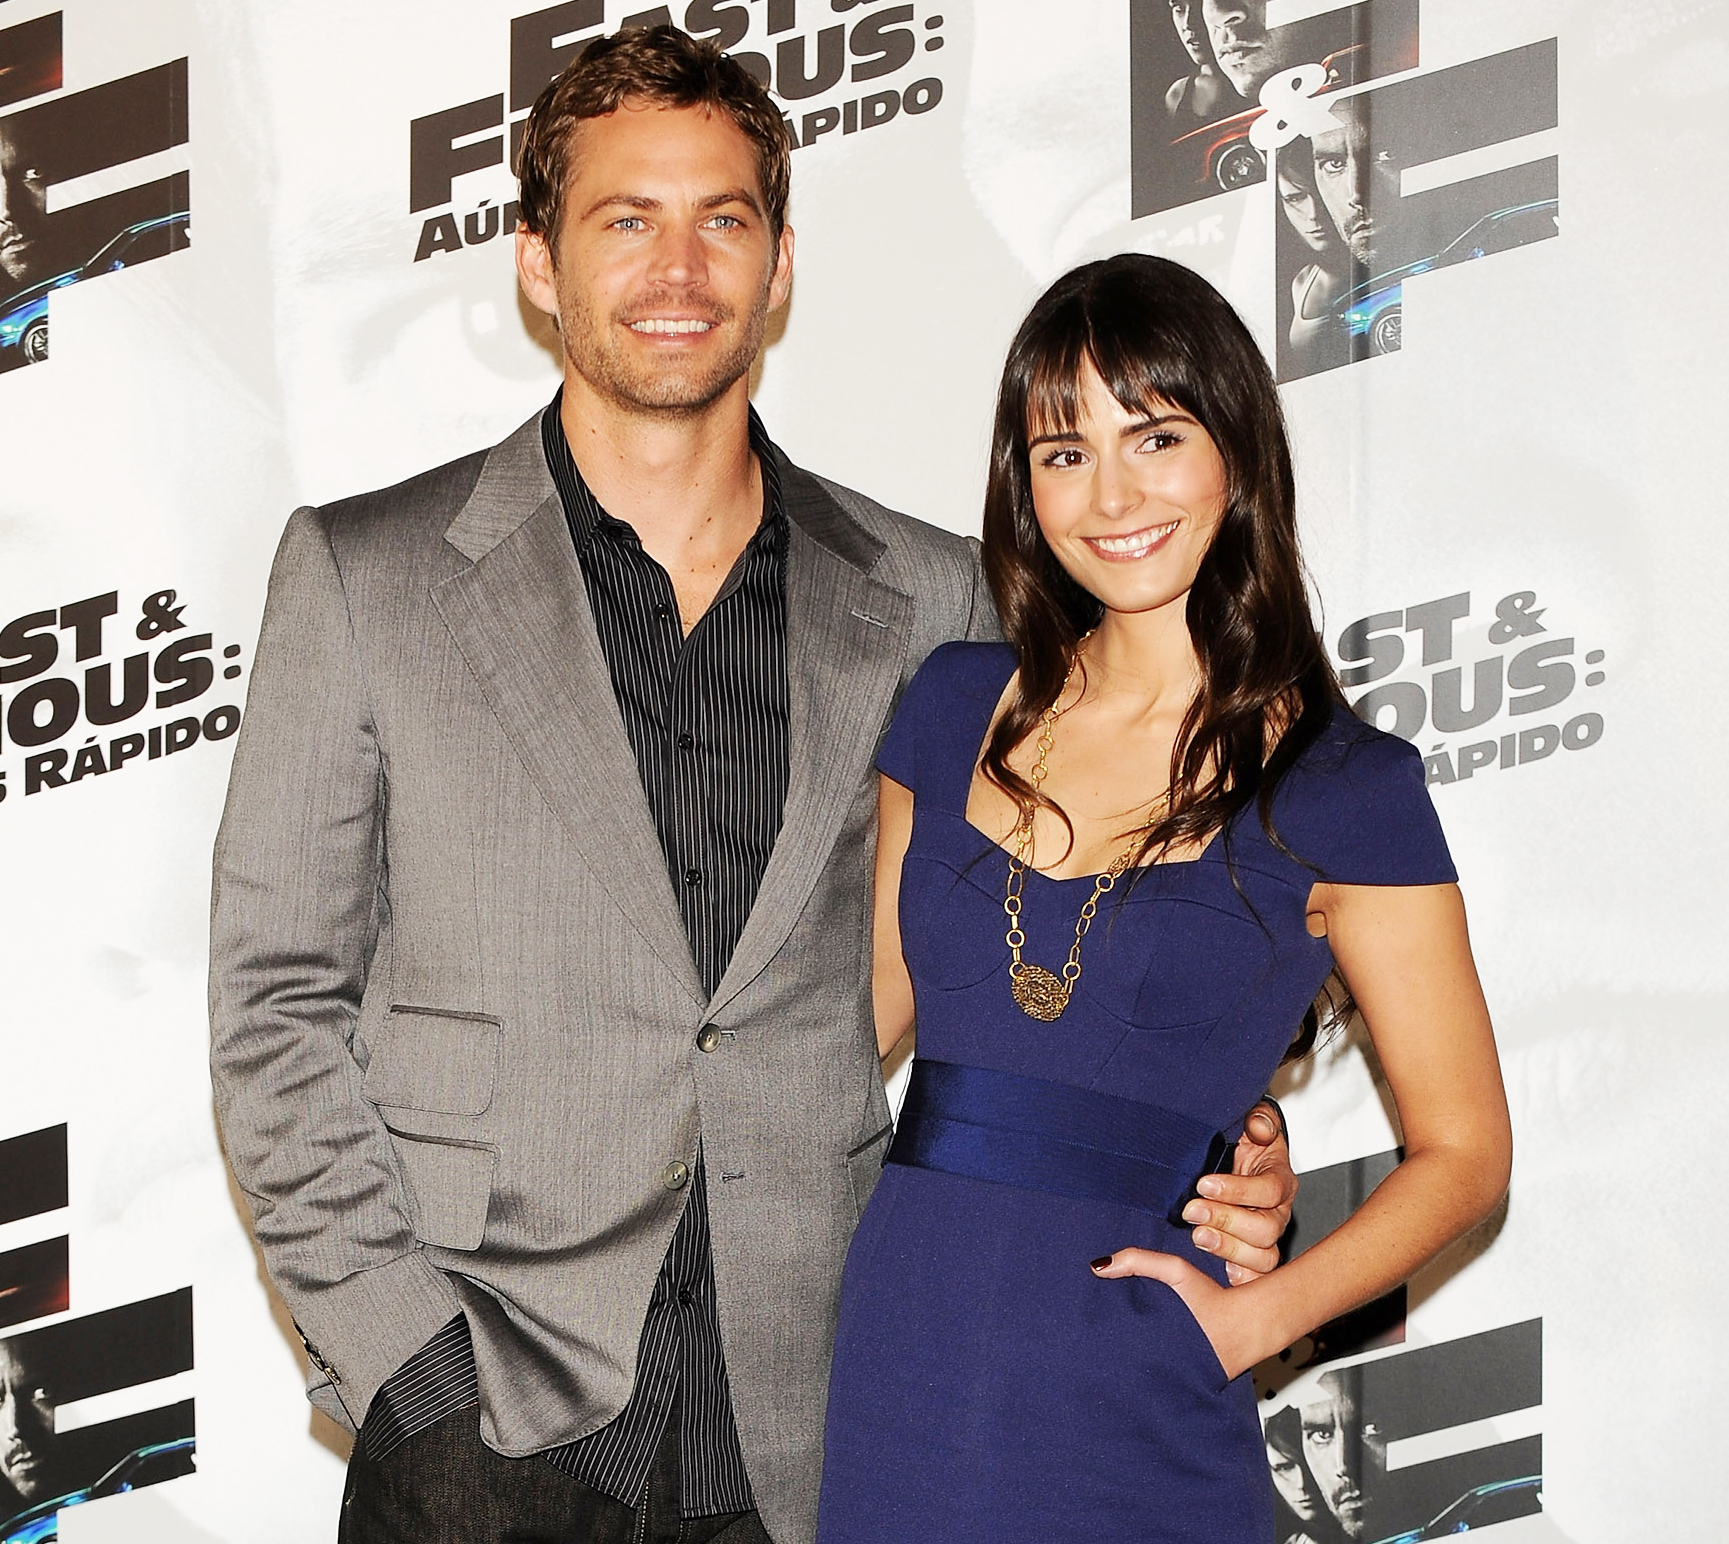 Paul Walker and Jordana Brewster attend Fast and Furious photocall at the Santo Mauro Hotel on March 25, 2009 in Madrid, Spain.